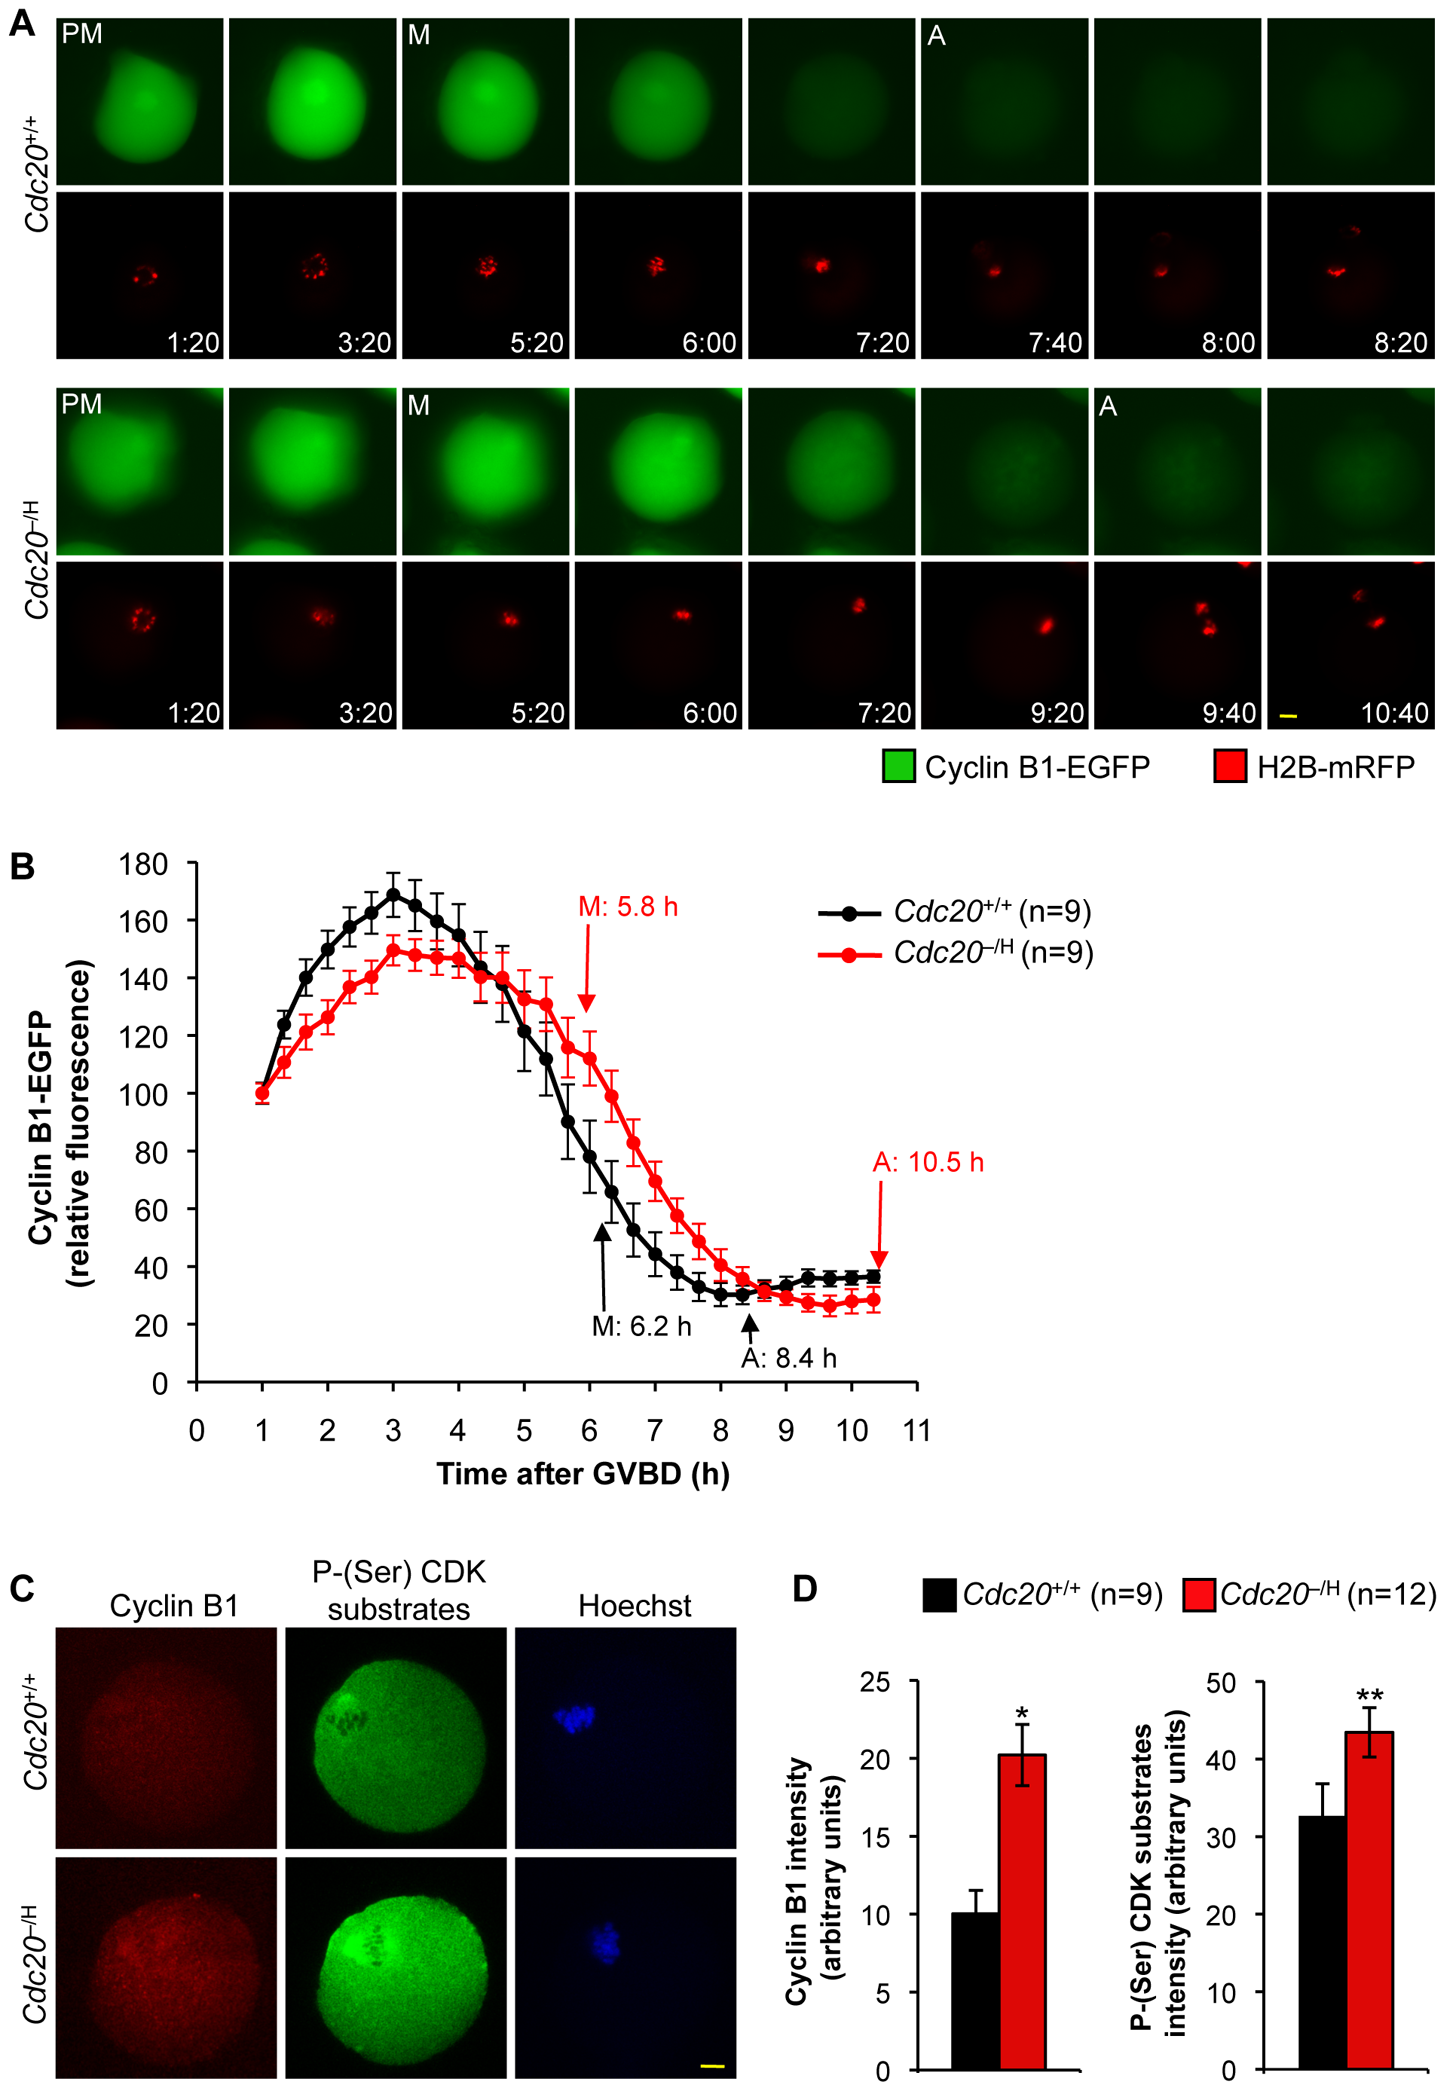 Cyclin B1 degradation is delayed during metaphase I if Cdc20 are low.